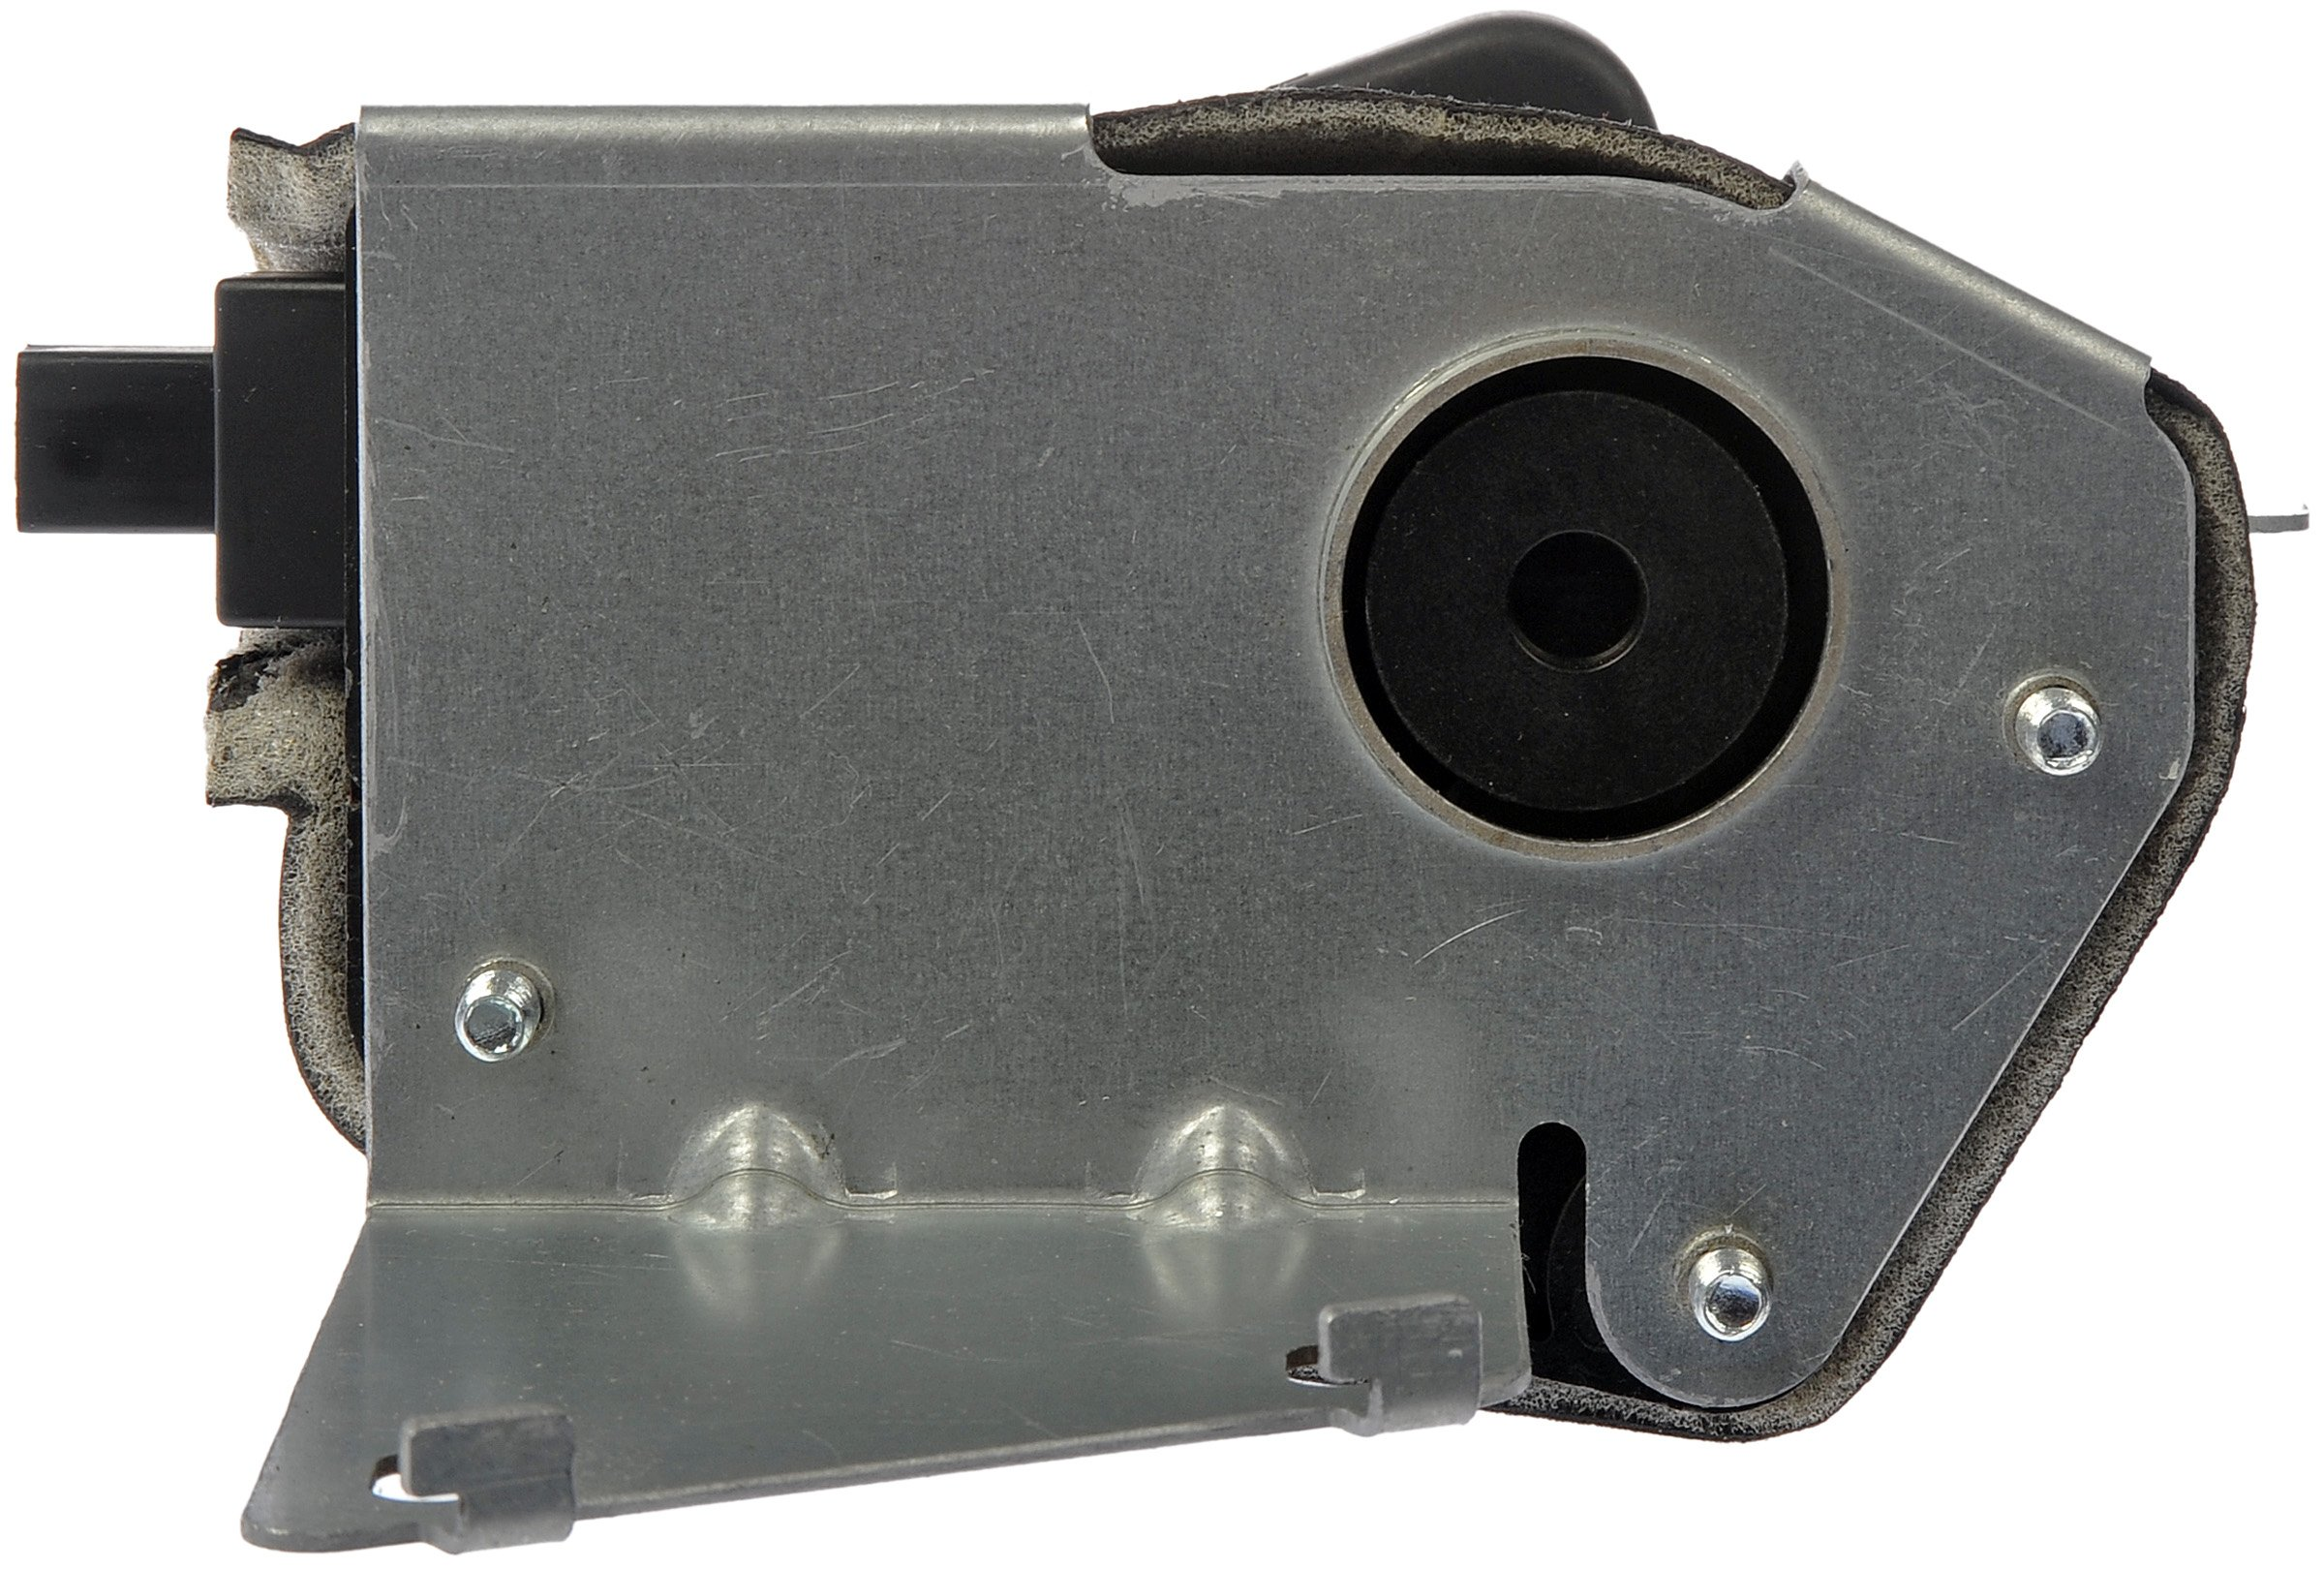 Dorman 948-500 Driver Side Replacement Power Vent Window Motor for Honda Odyssey by Dorman